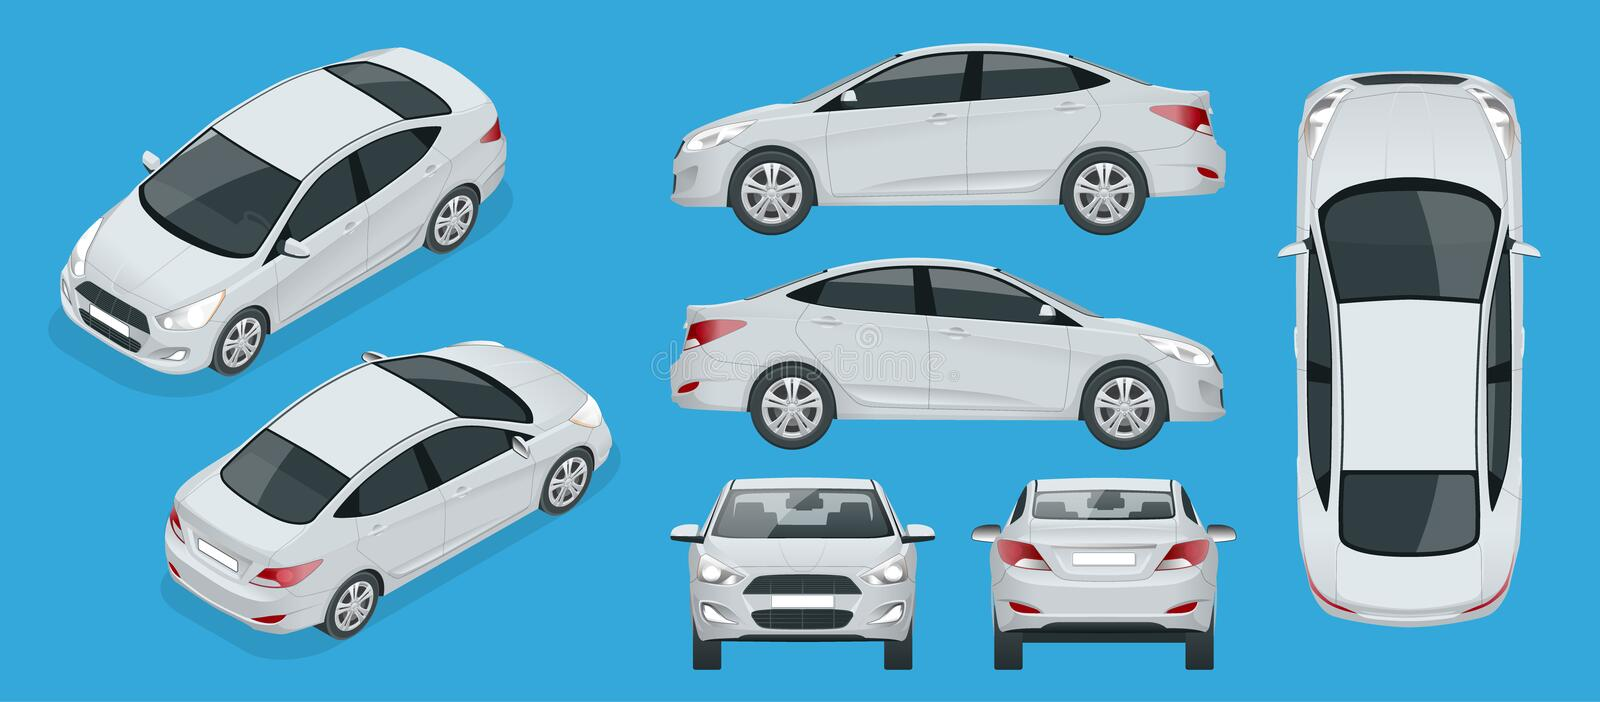 Set of Sedan Cars. Compact Hybrid Vehicle. Eco-friendly hi-tech auto. Isolated car, template for branding, advertising vector illustration